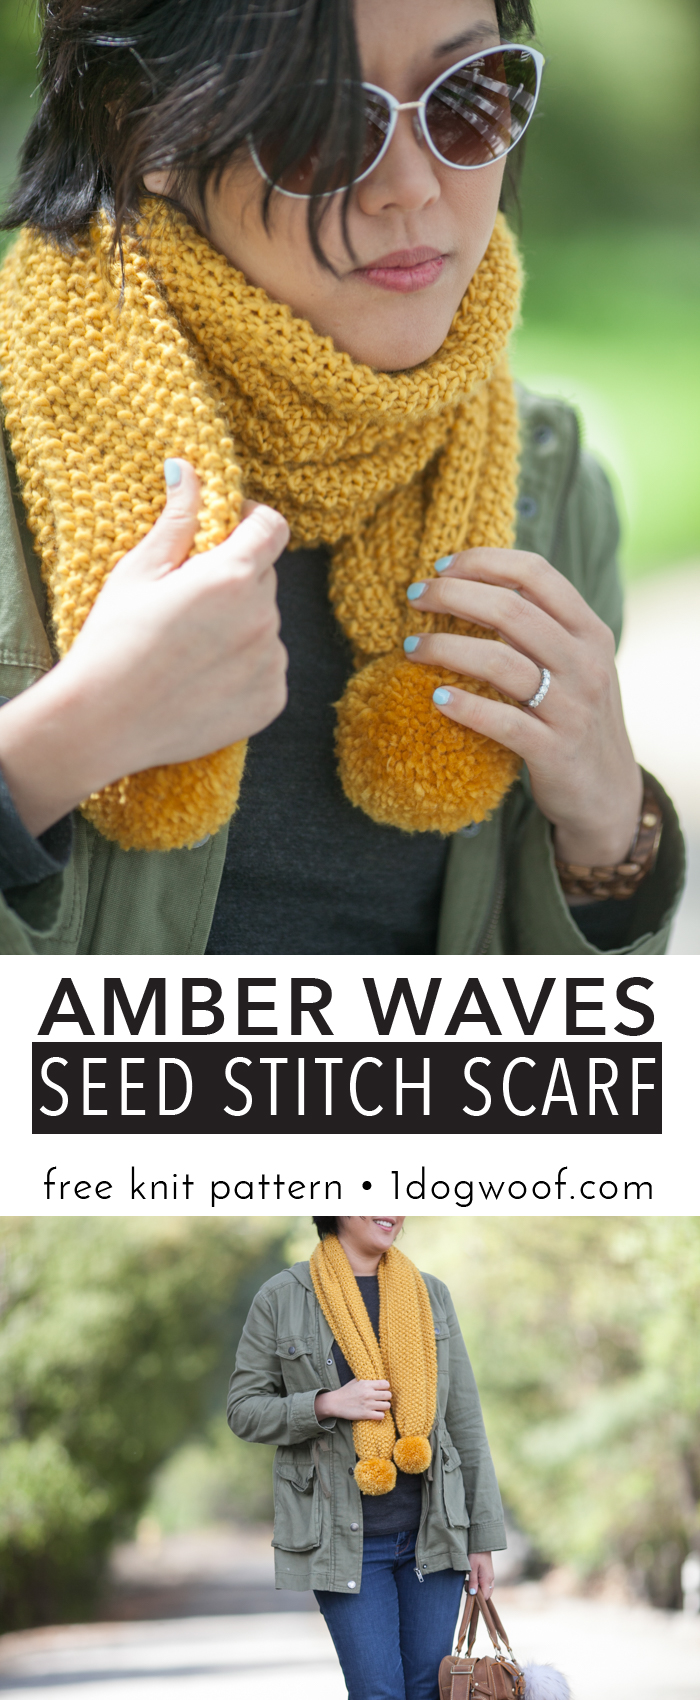 This free pattern for a simple seed stitch knit scarf is a great start project for a beginner knitter! Amber Waves Seed Stitch Scarf, www.1dogwoof.com